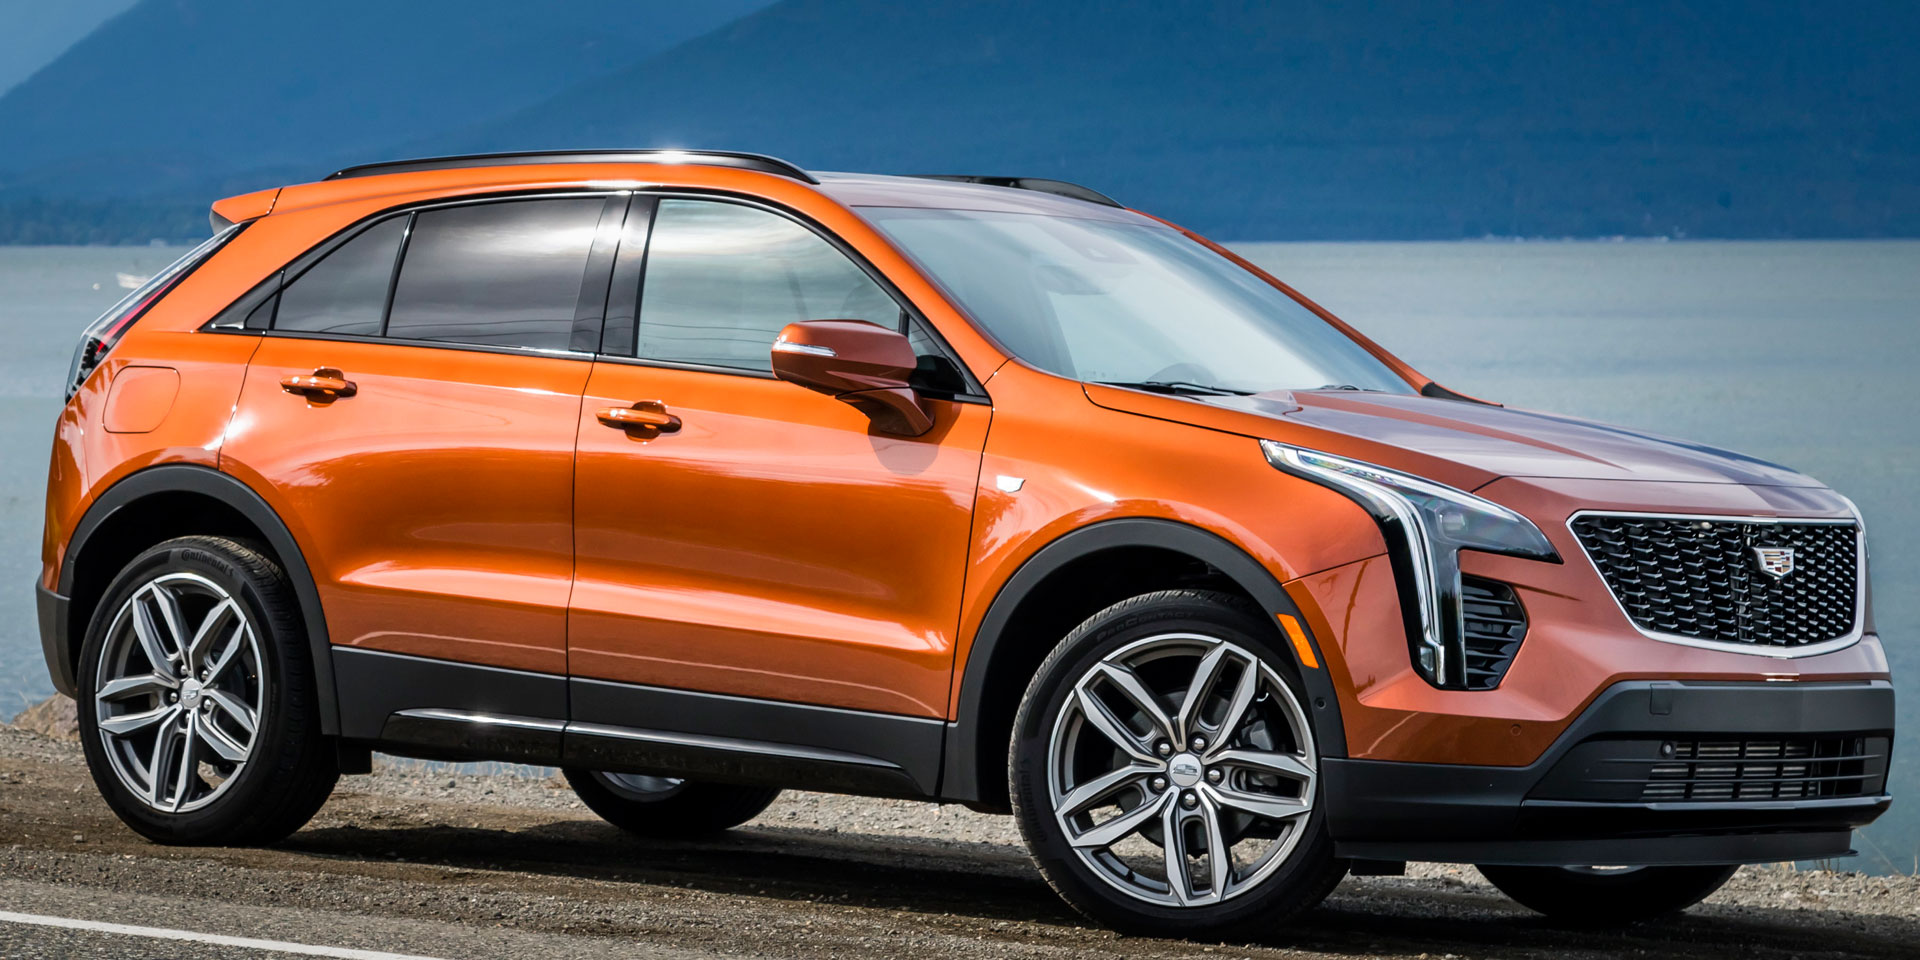 2019 - Cadillac - XT4 - Vehicles on Display | Chicago Auto ...